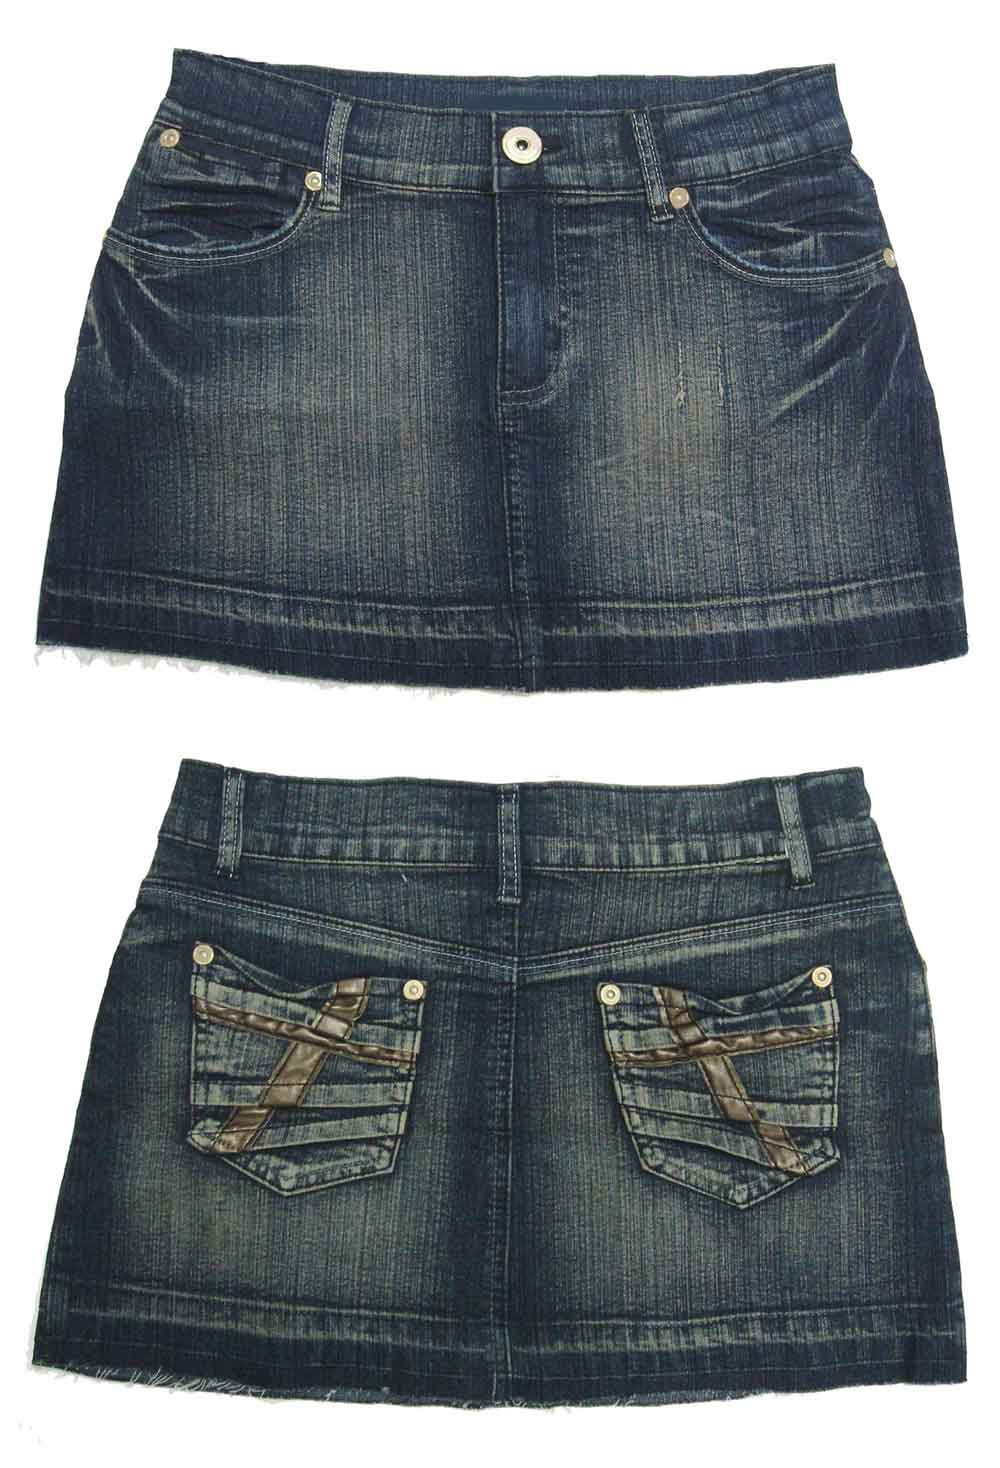 Ladies Stretch Denim Mini Skirt - Buy Skirt,Denim Skirt,Jean Skirt ...